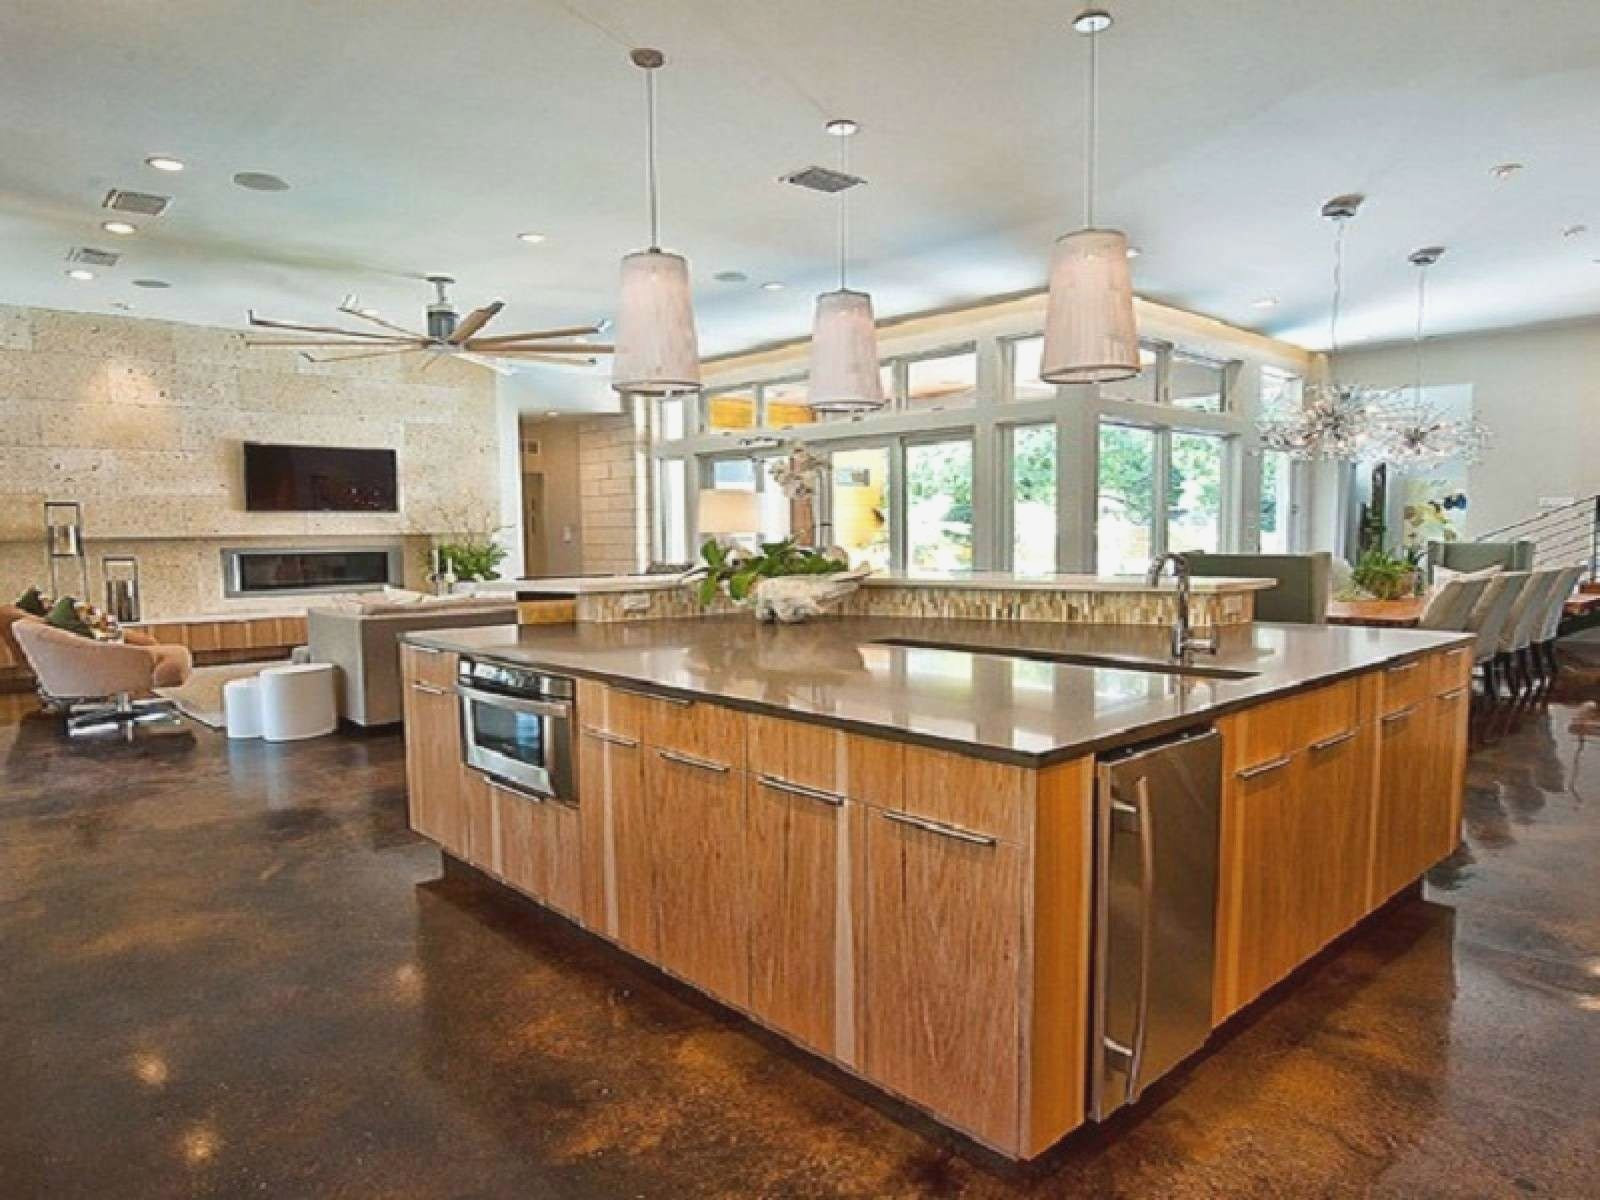 maple hardwood flooring pictures of hardwood floors in kitchen house decor regarding wood floors in kitchen decorating an open floor plan living room awesome design plan 0d